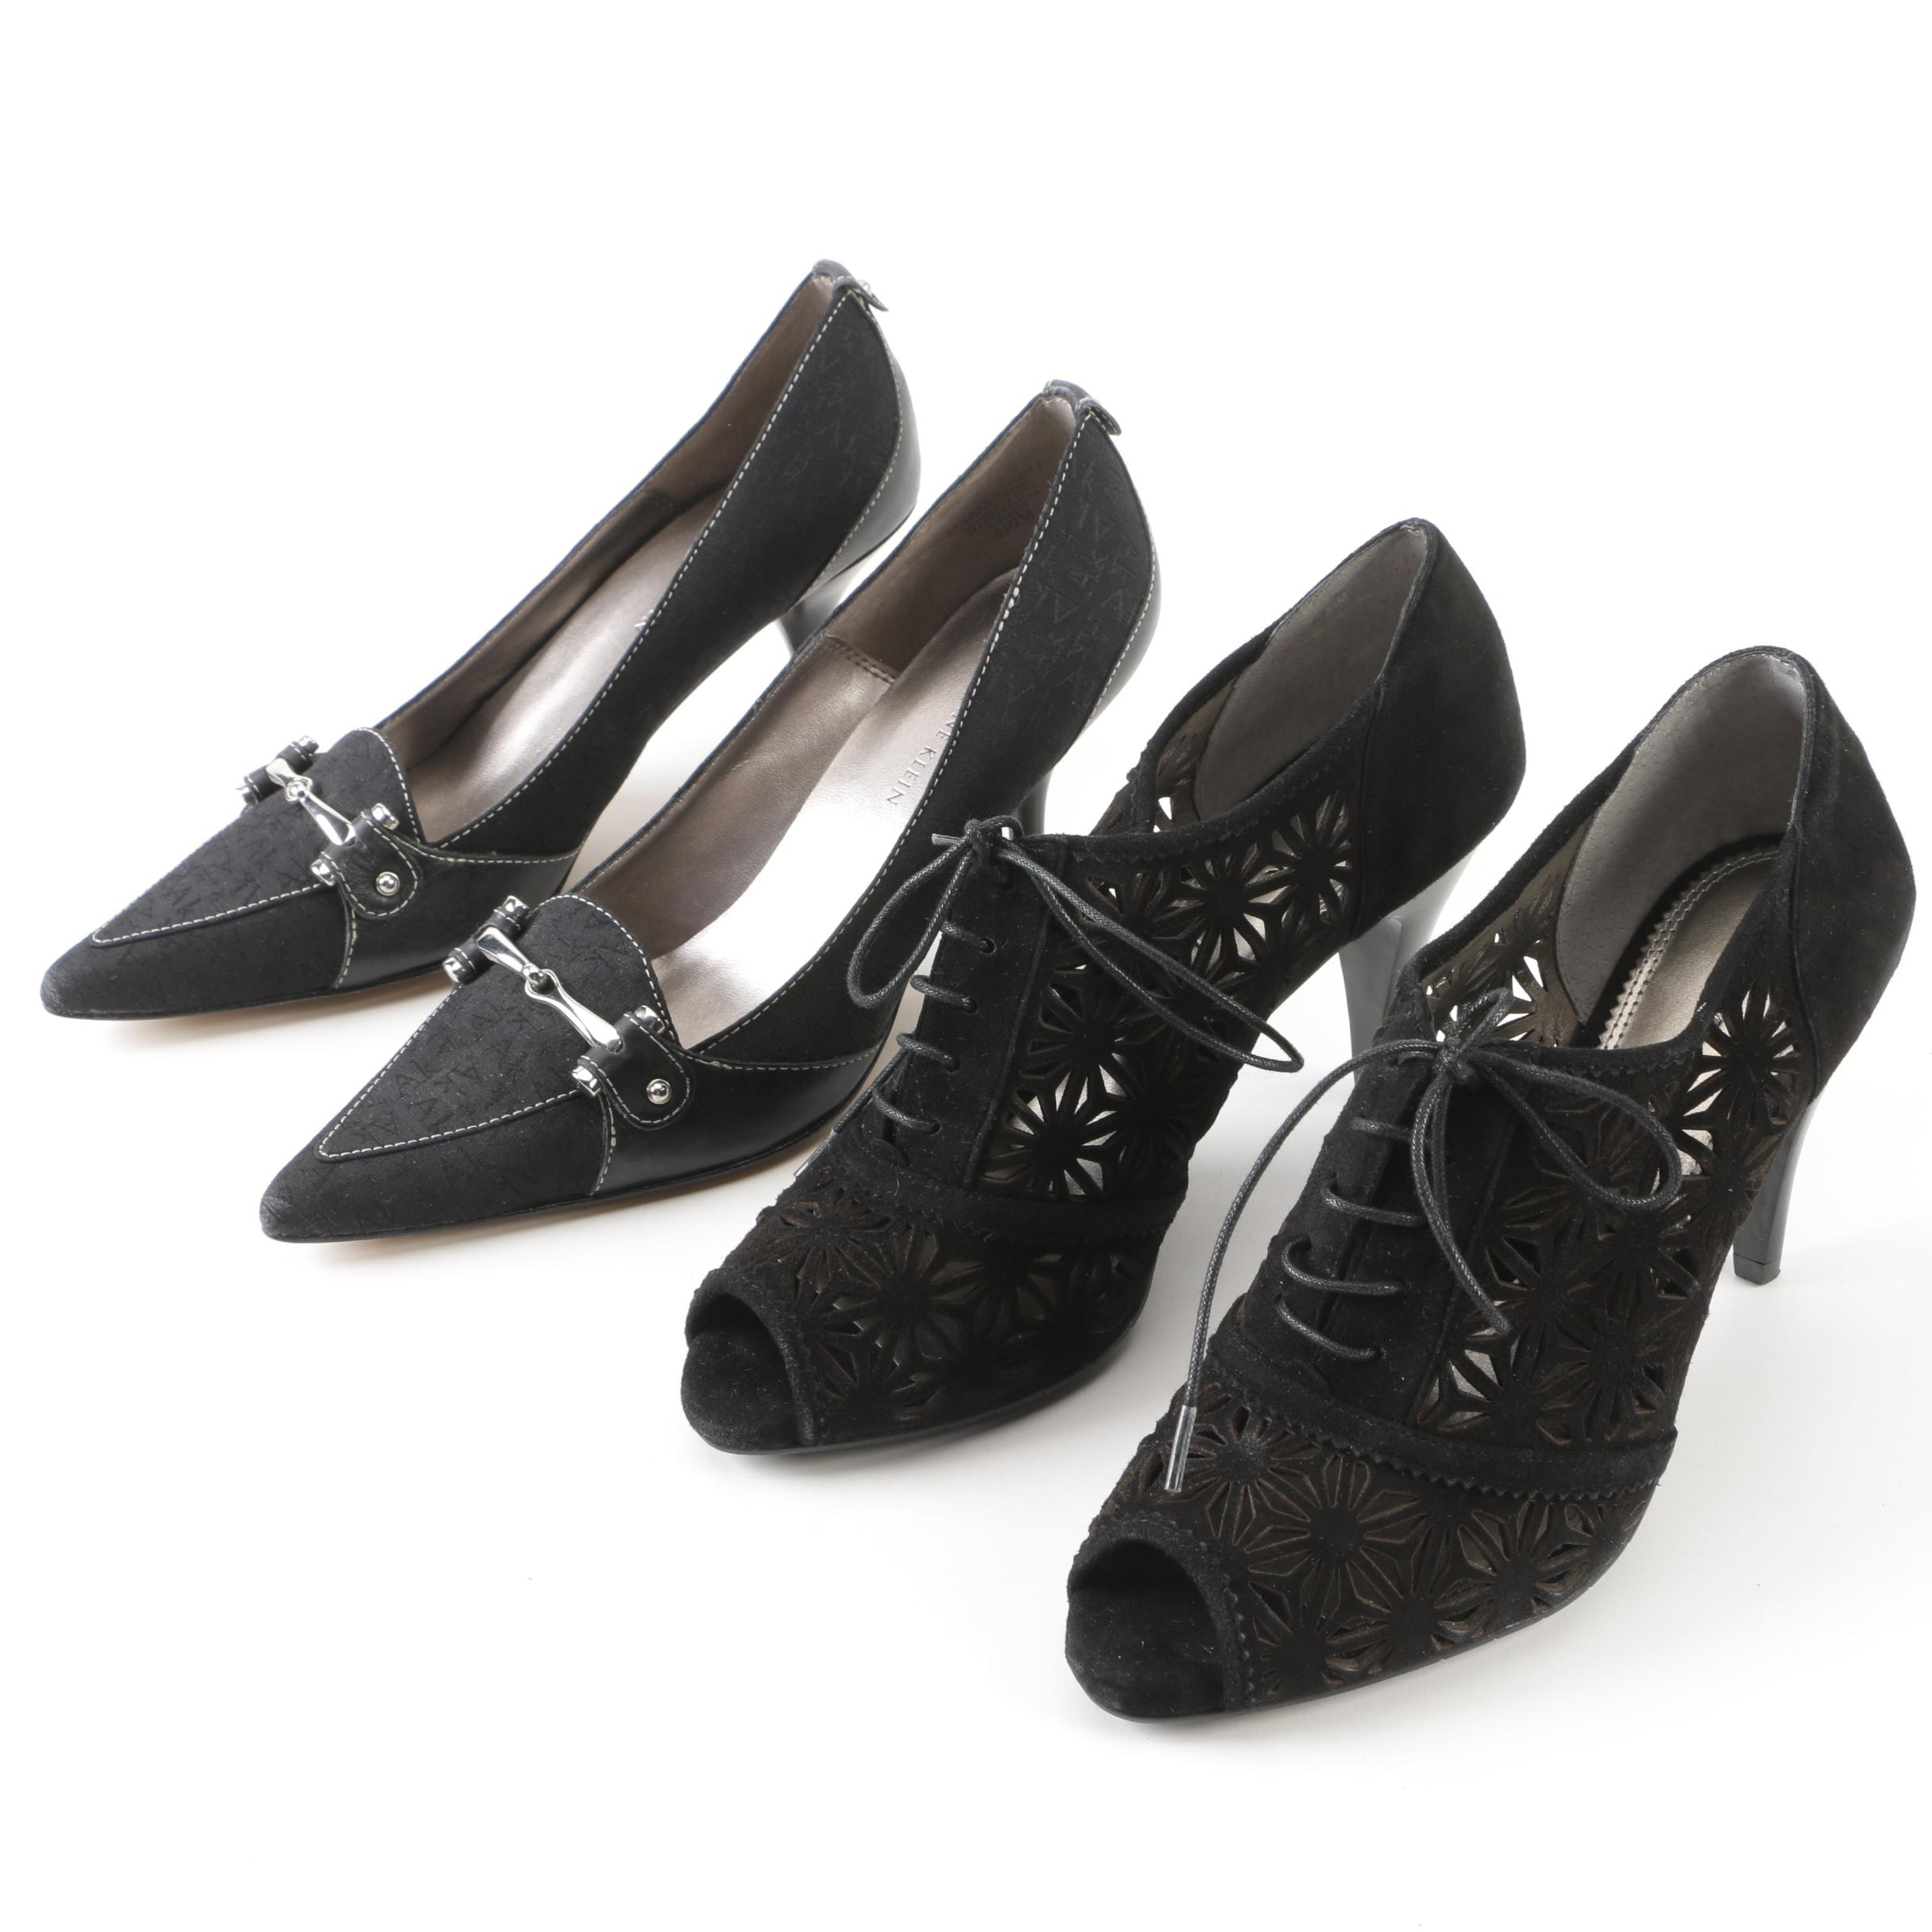 Anne Klein Monogram Pumps and A. Marinelli Laser-Cut Black Suede Lace-Up Booties